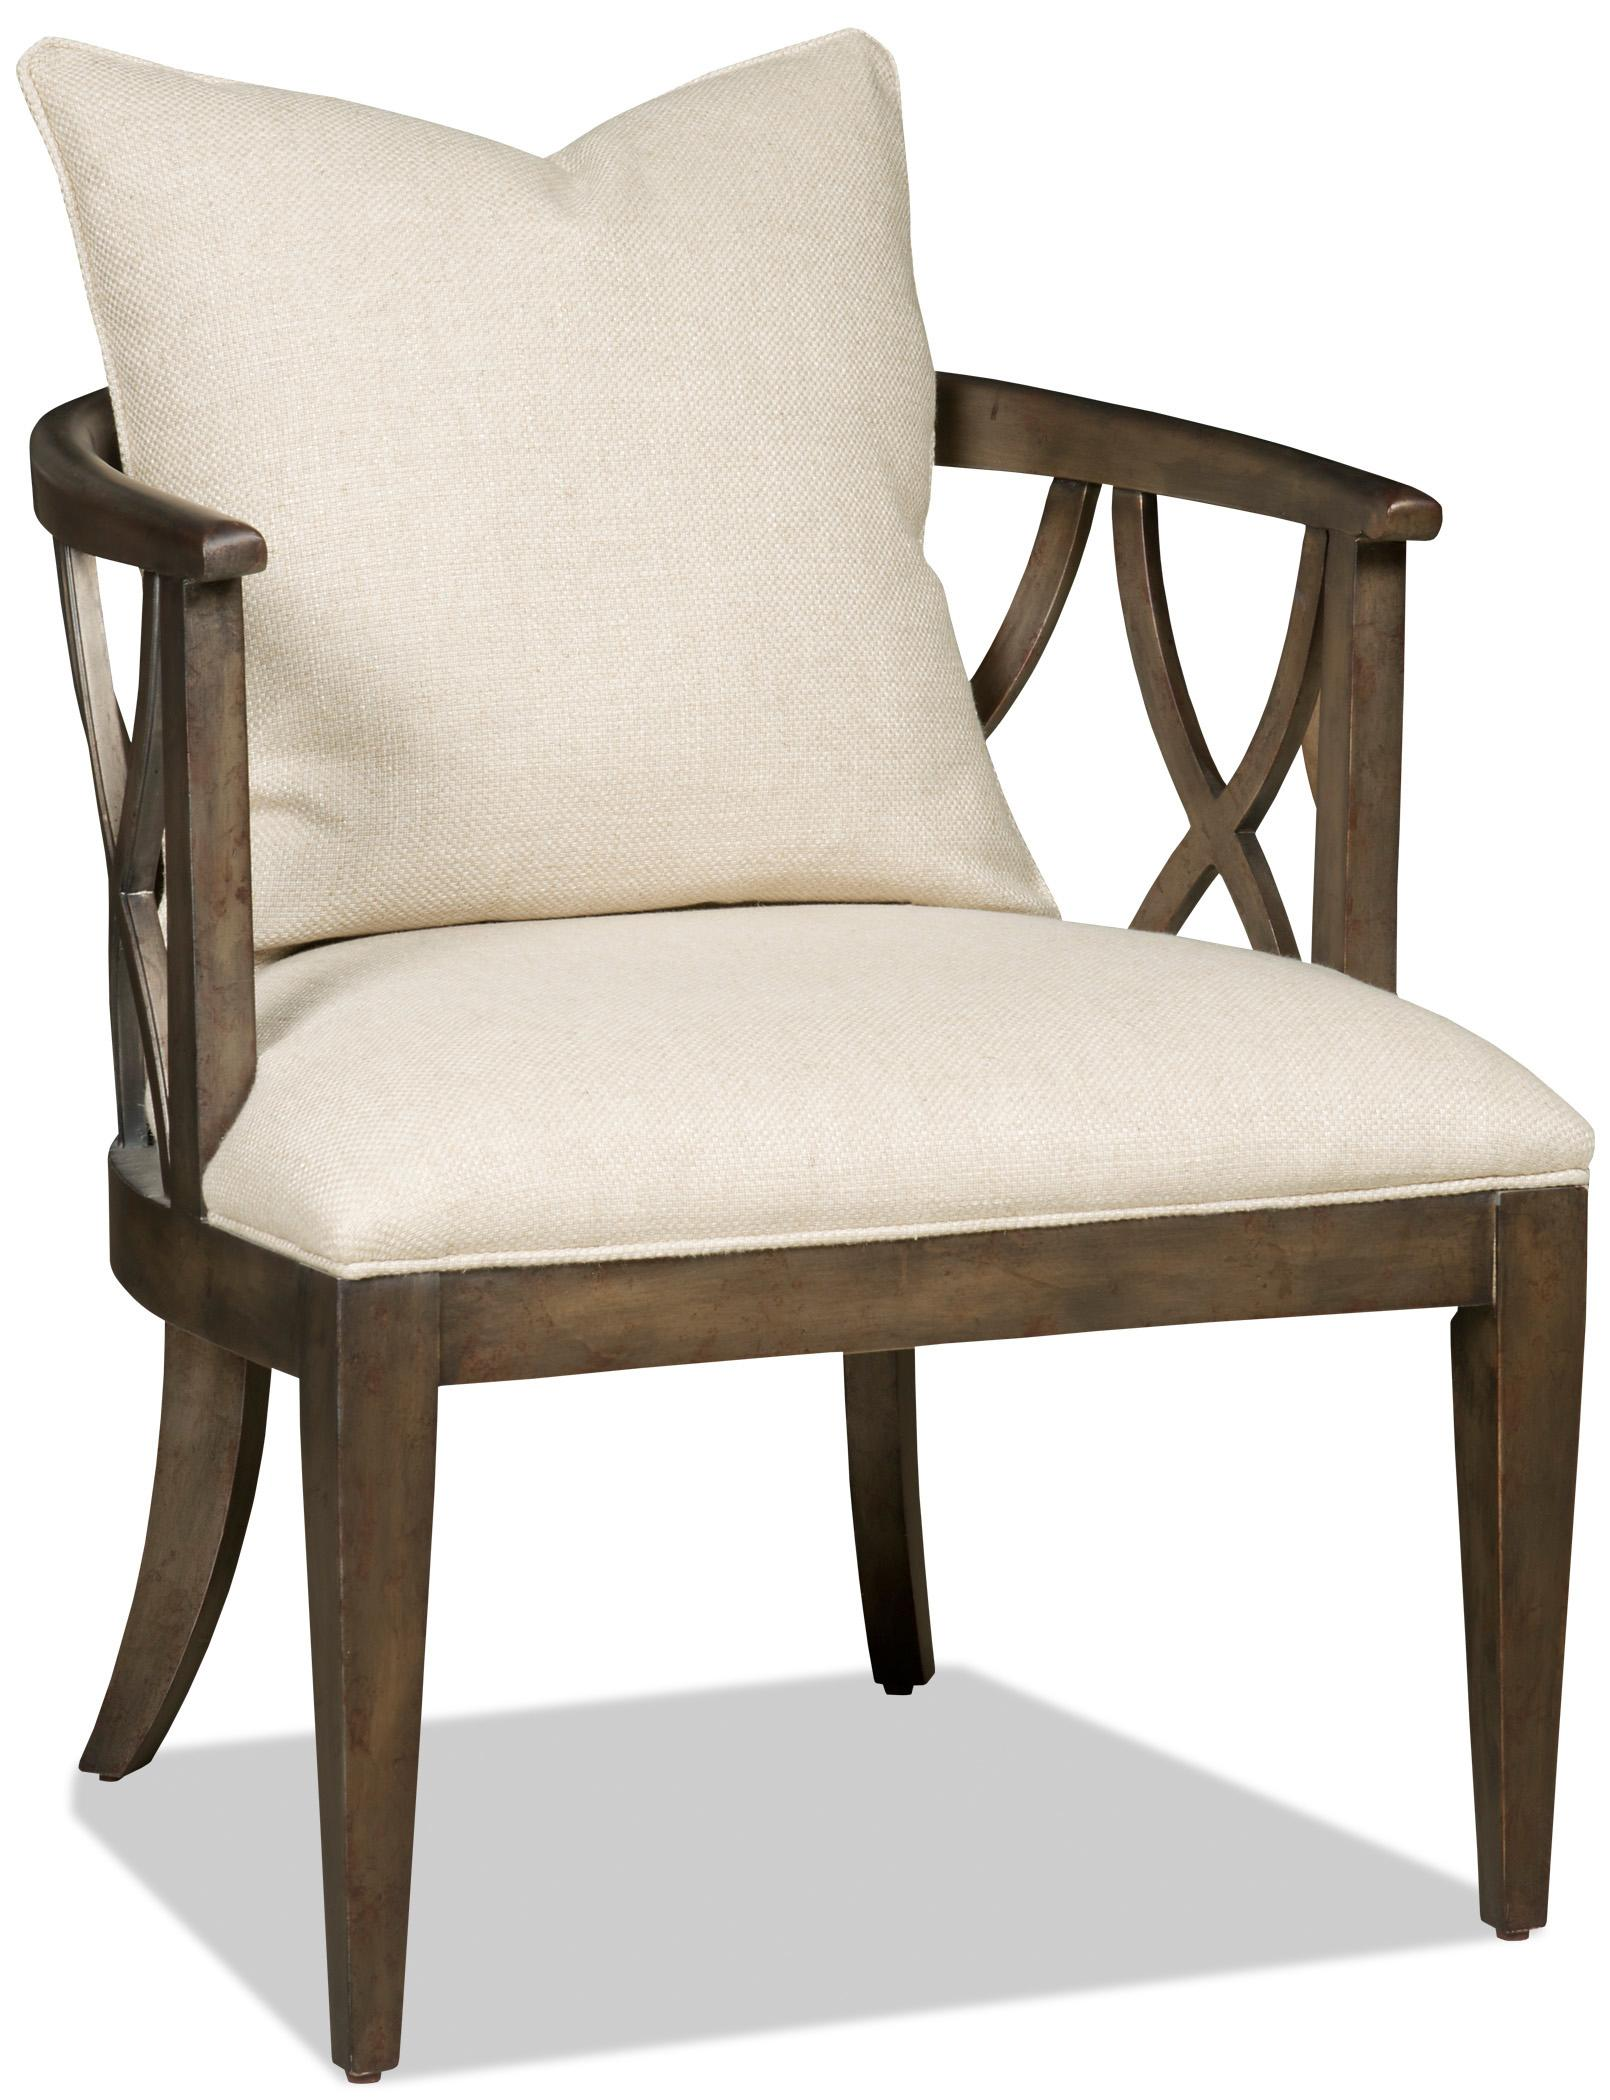 Hamilton Home Accent Chairs Accent Chair - Item Number: 300-350026